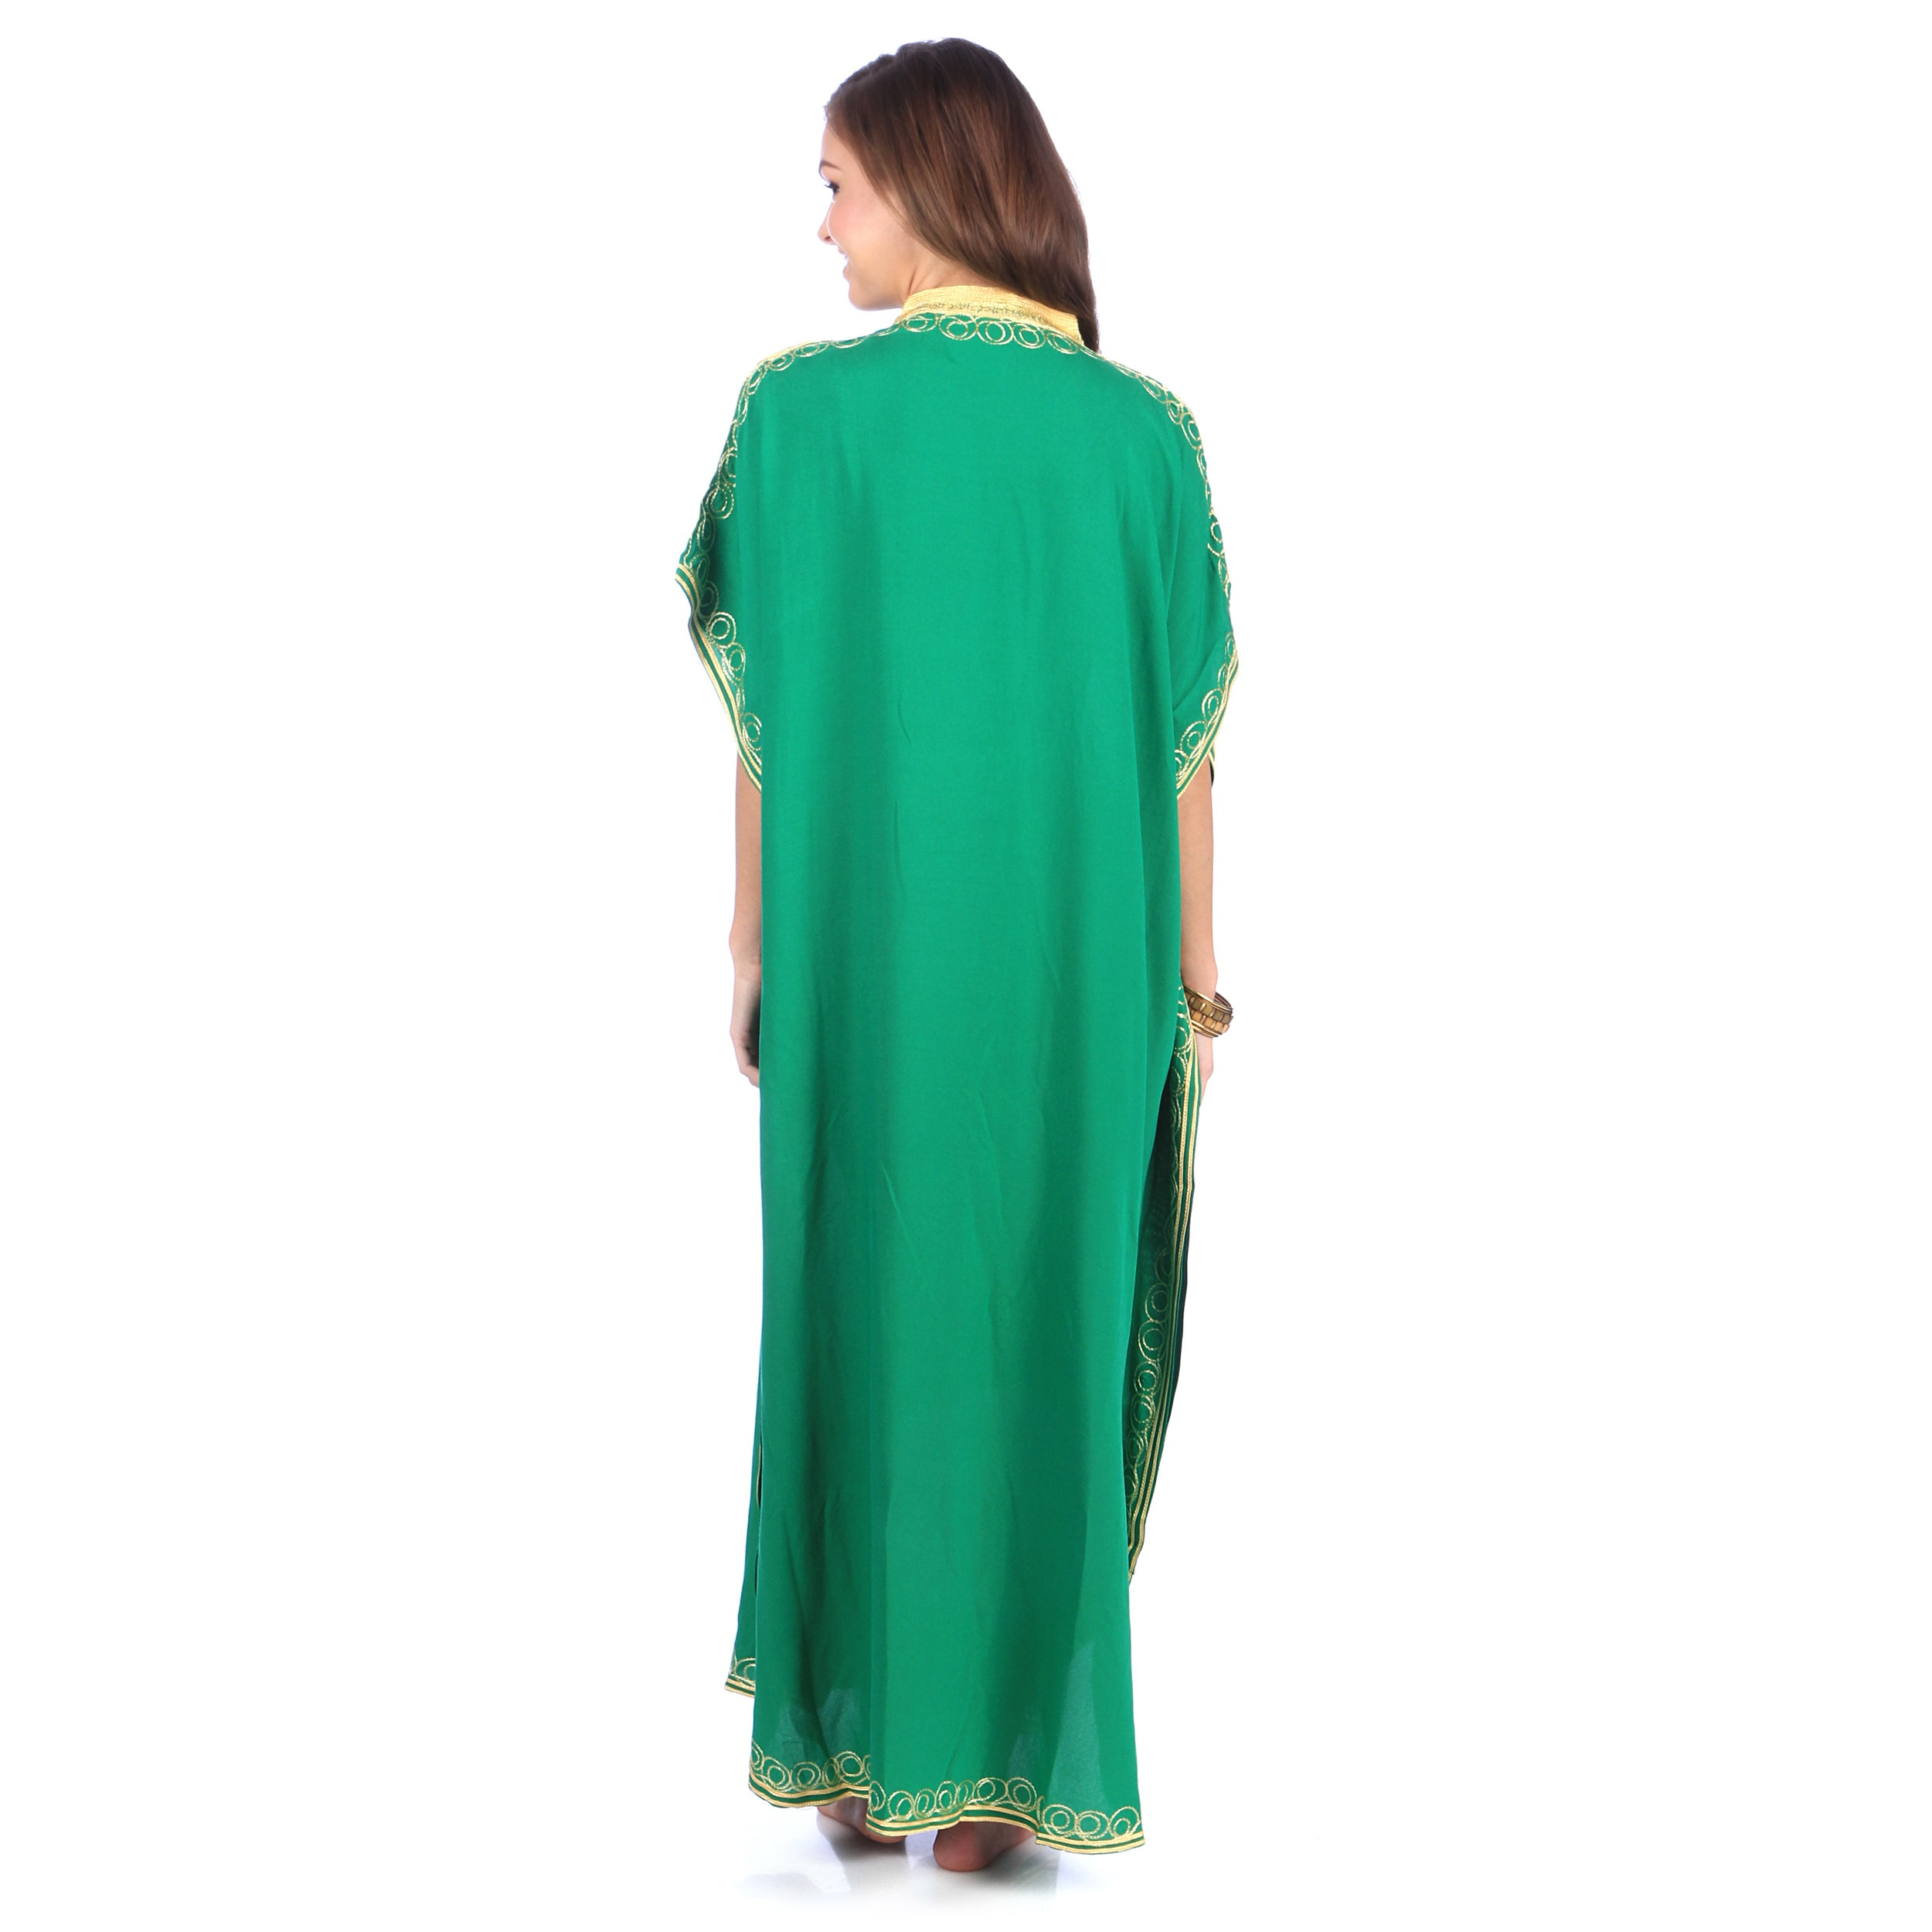 2019 year for women- Caftans womens